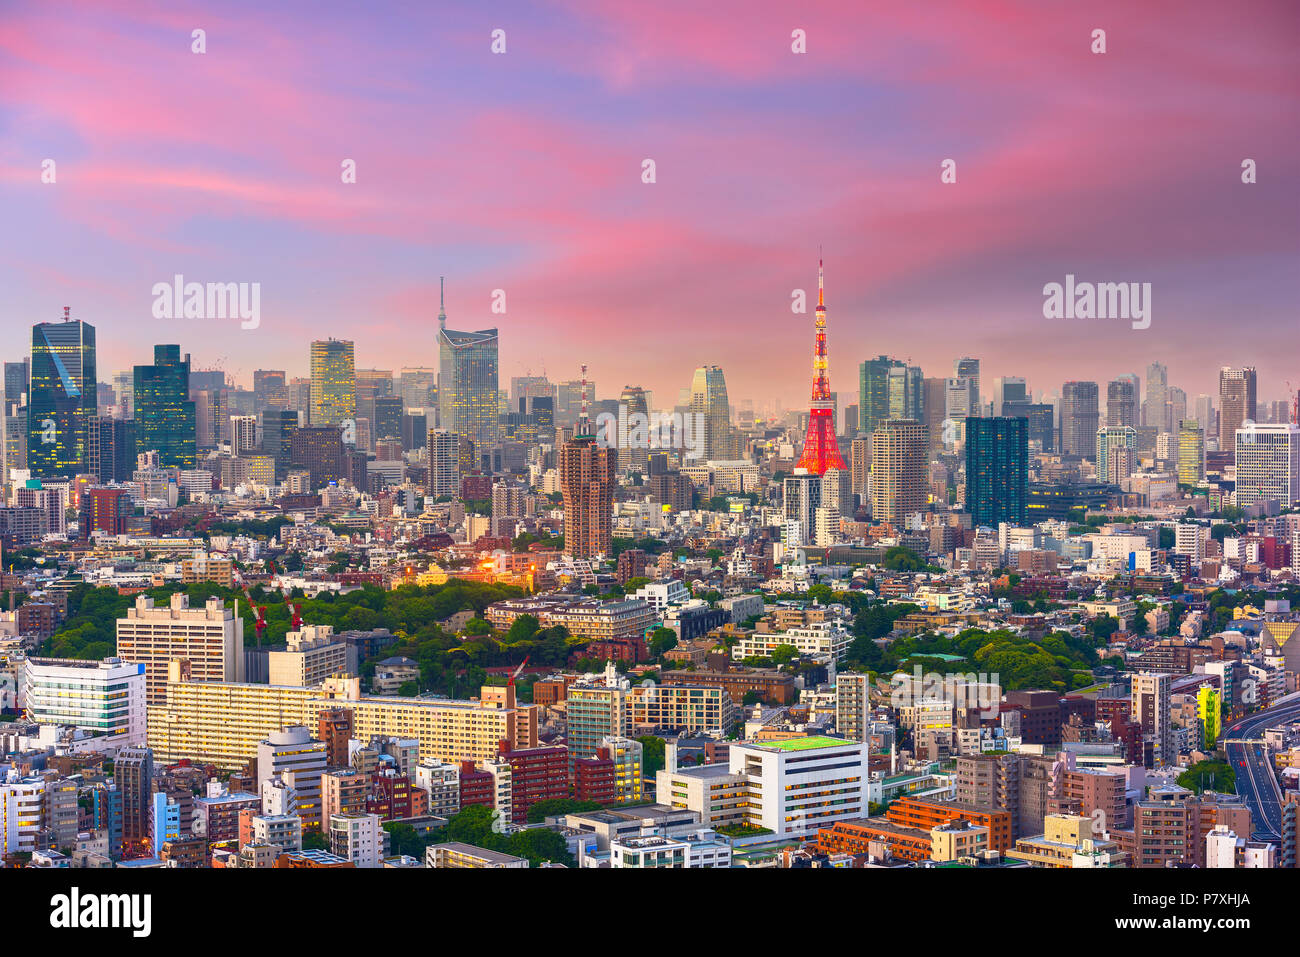 Tokyo, Japan cityscape and tower at dusk from the Ebisu district. - Stock Image